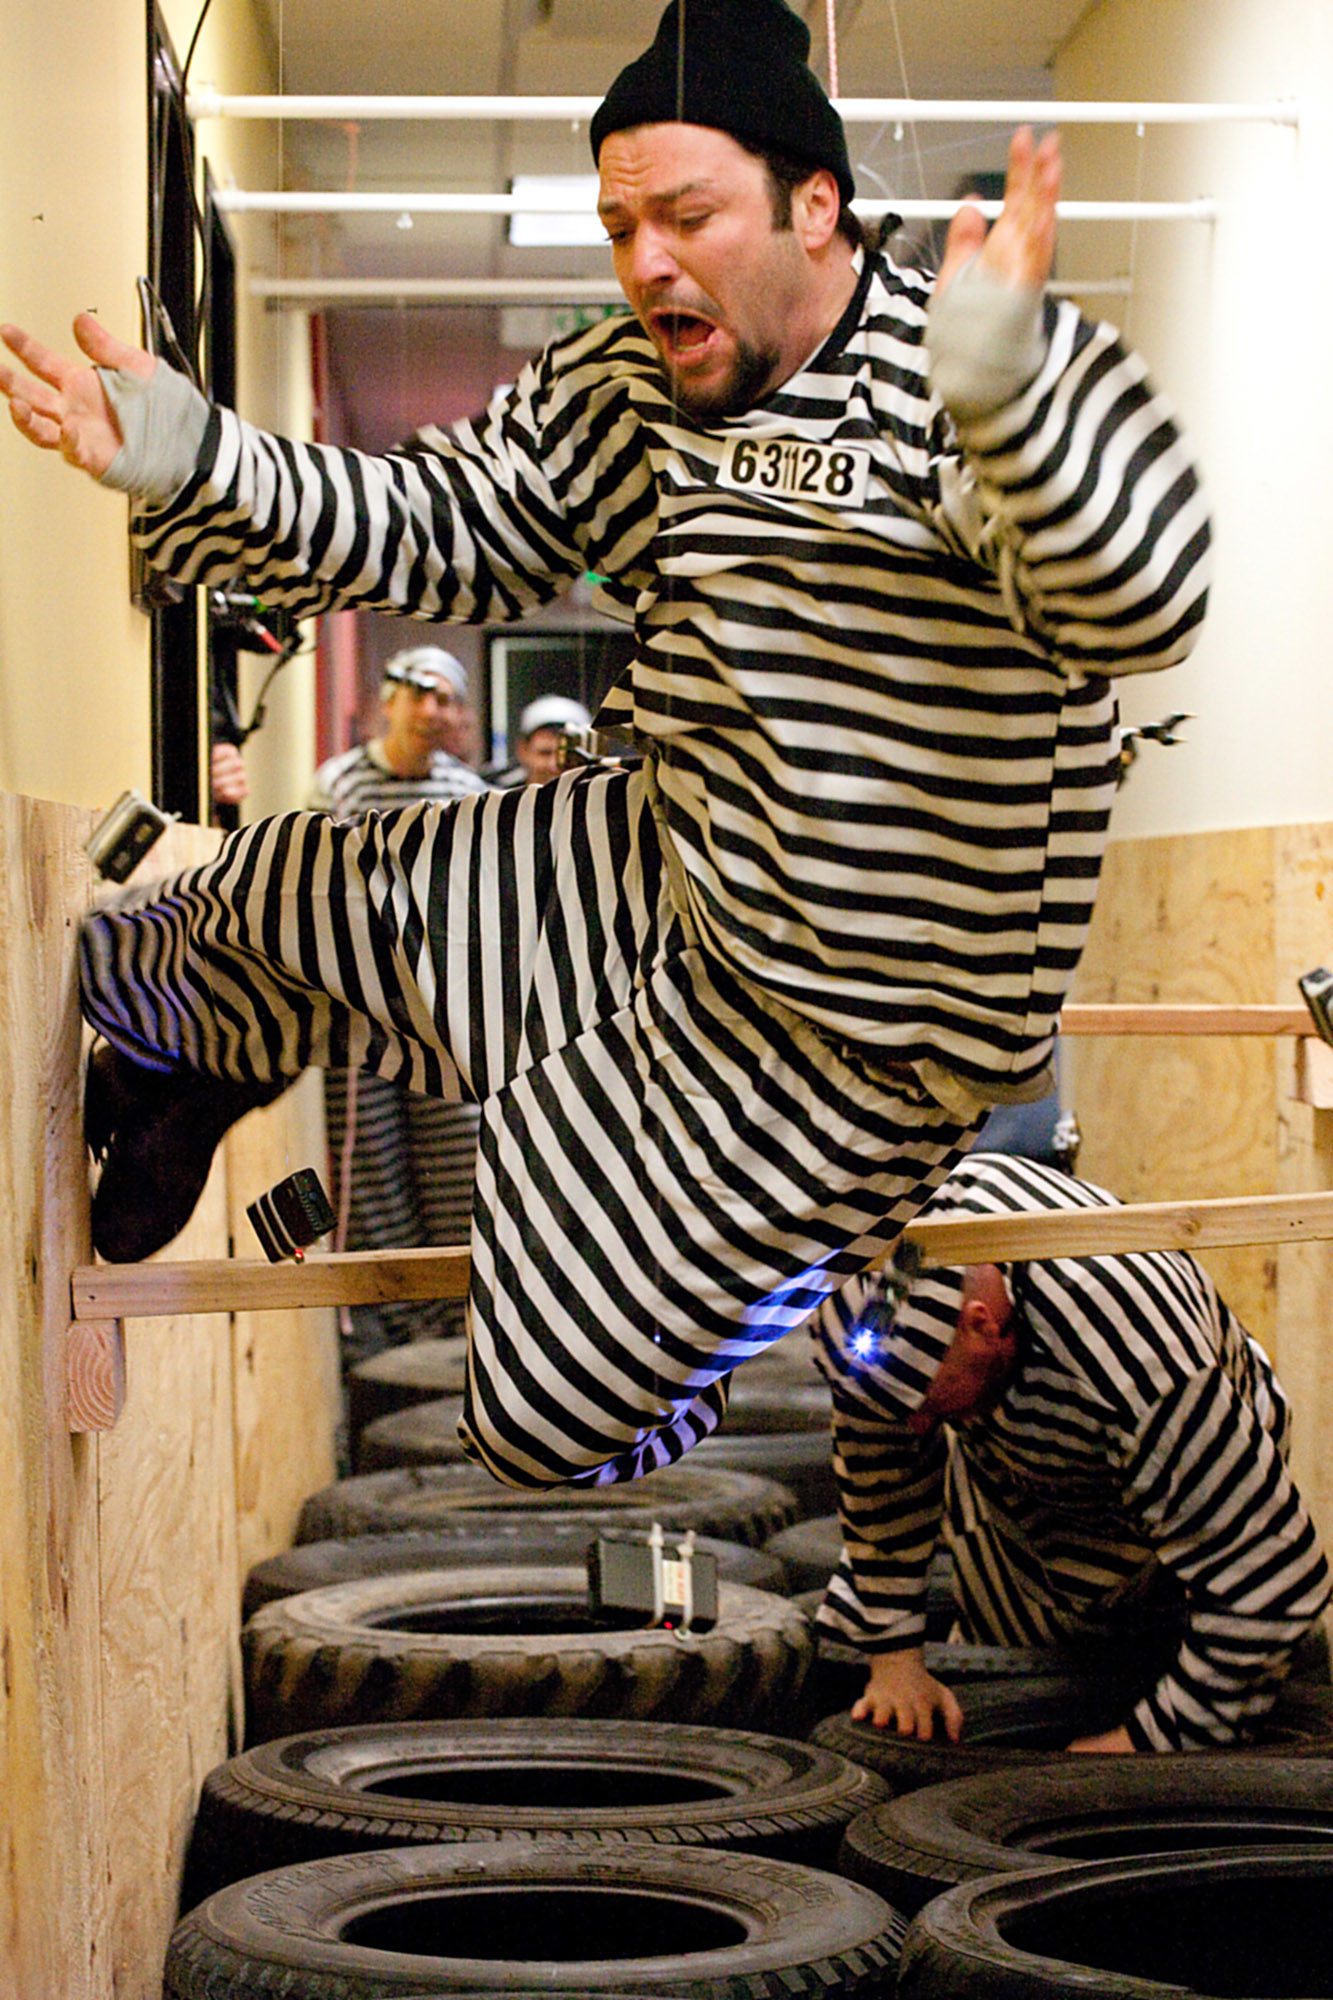 Bam dressed in a striped prison outfit and running through a hallway filled with Tasers